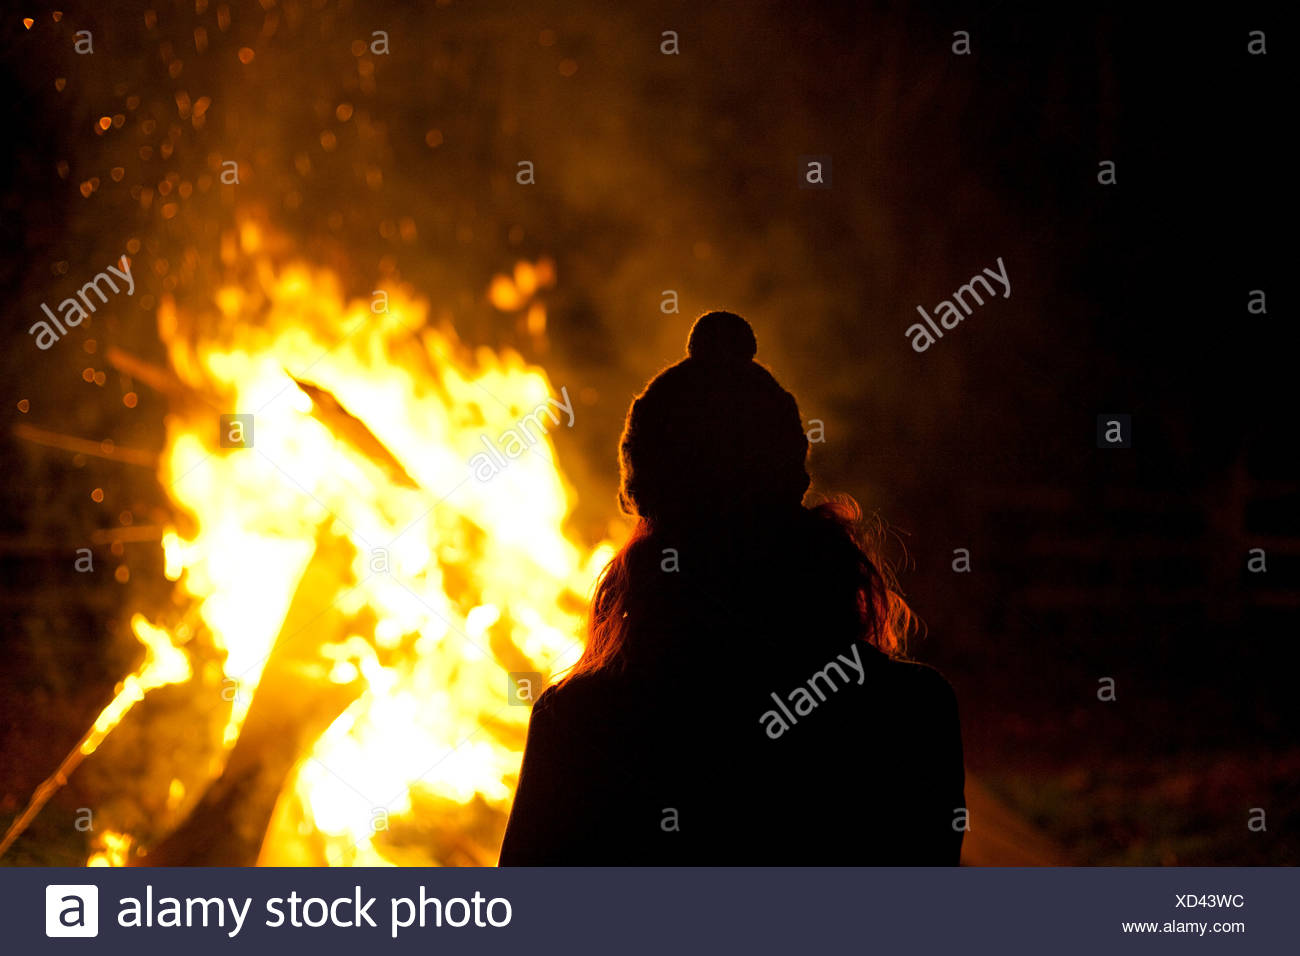 Woman on bonfire night - Stock Image